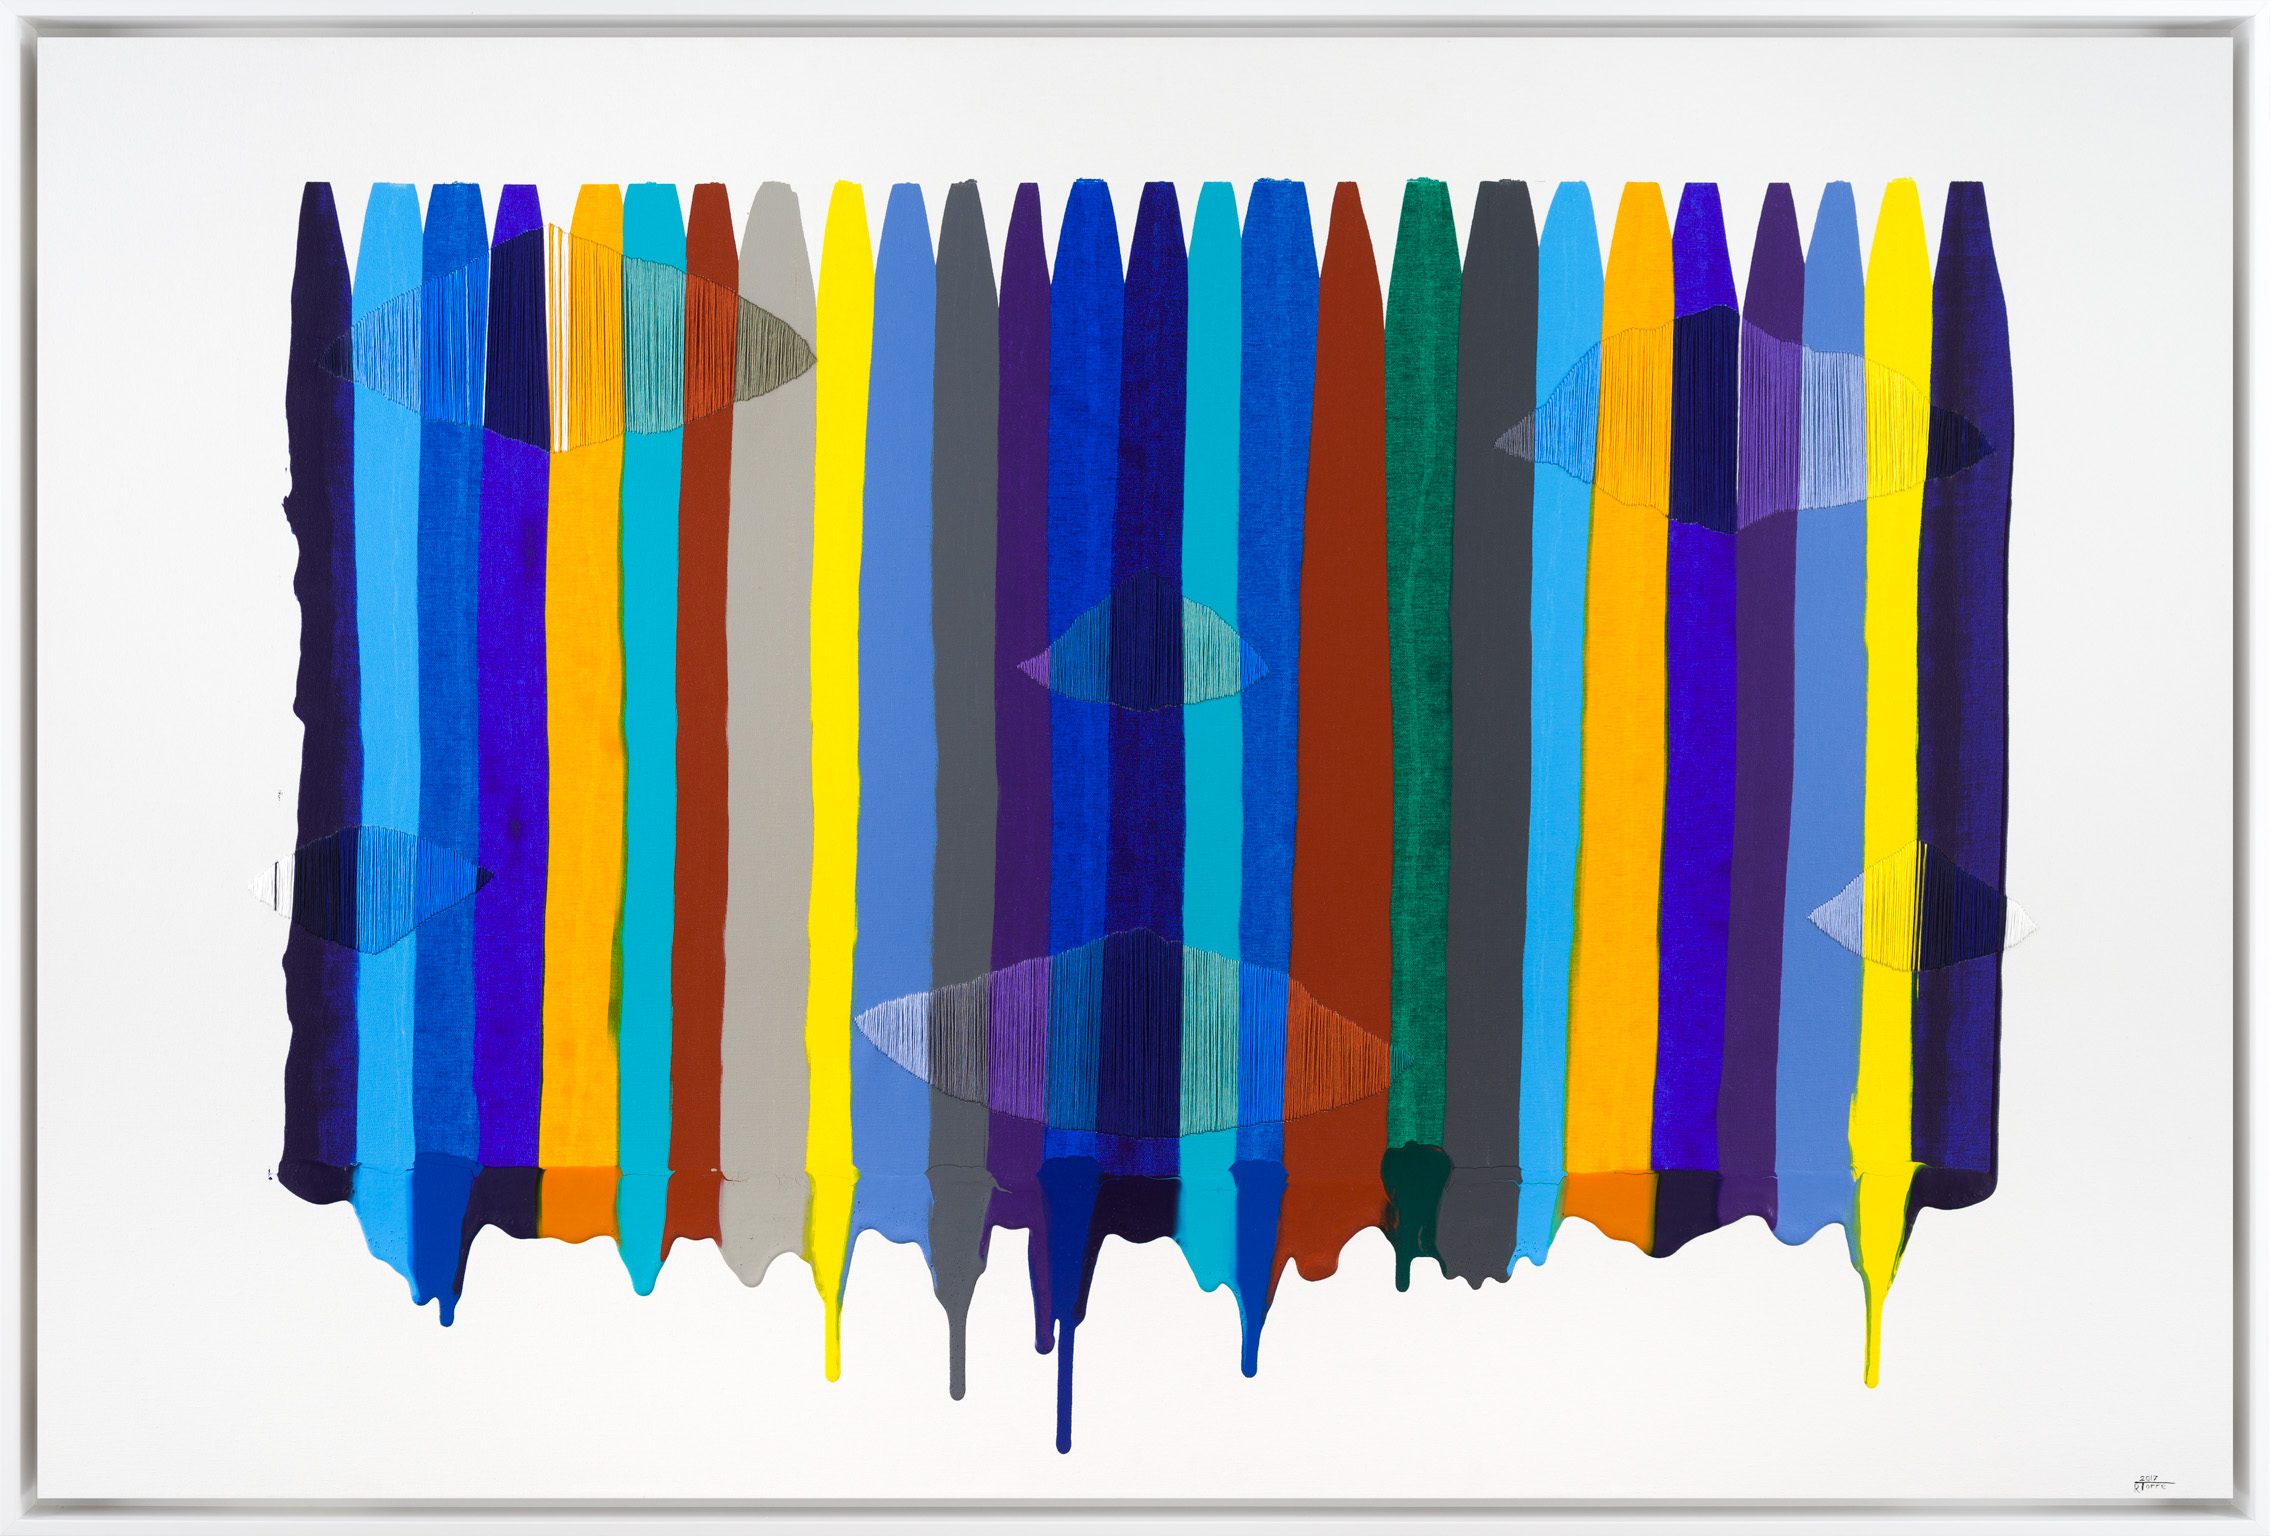 Raul de la Torre, Fils I Colors CCVCVI, Mixed Media on Canvas, 40 × 60 inches